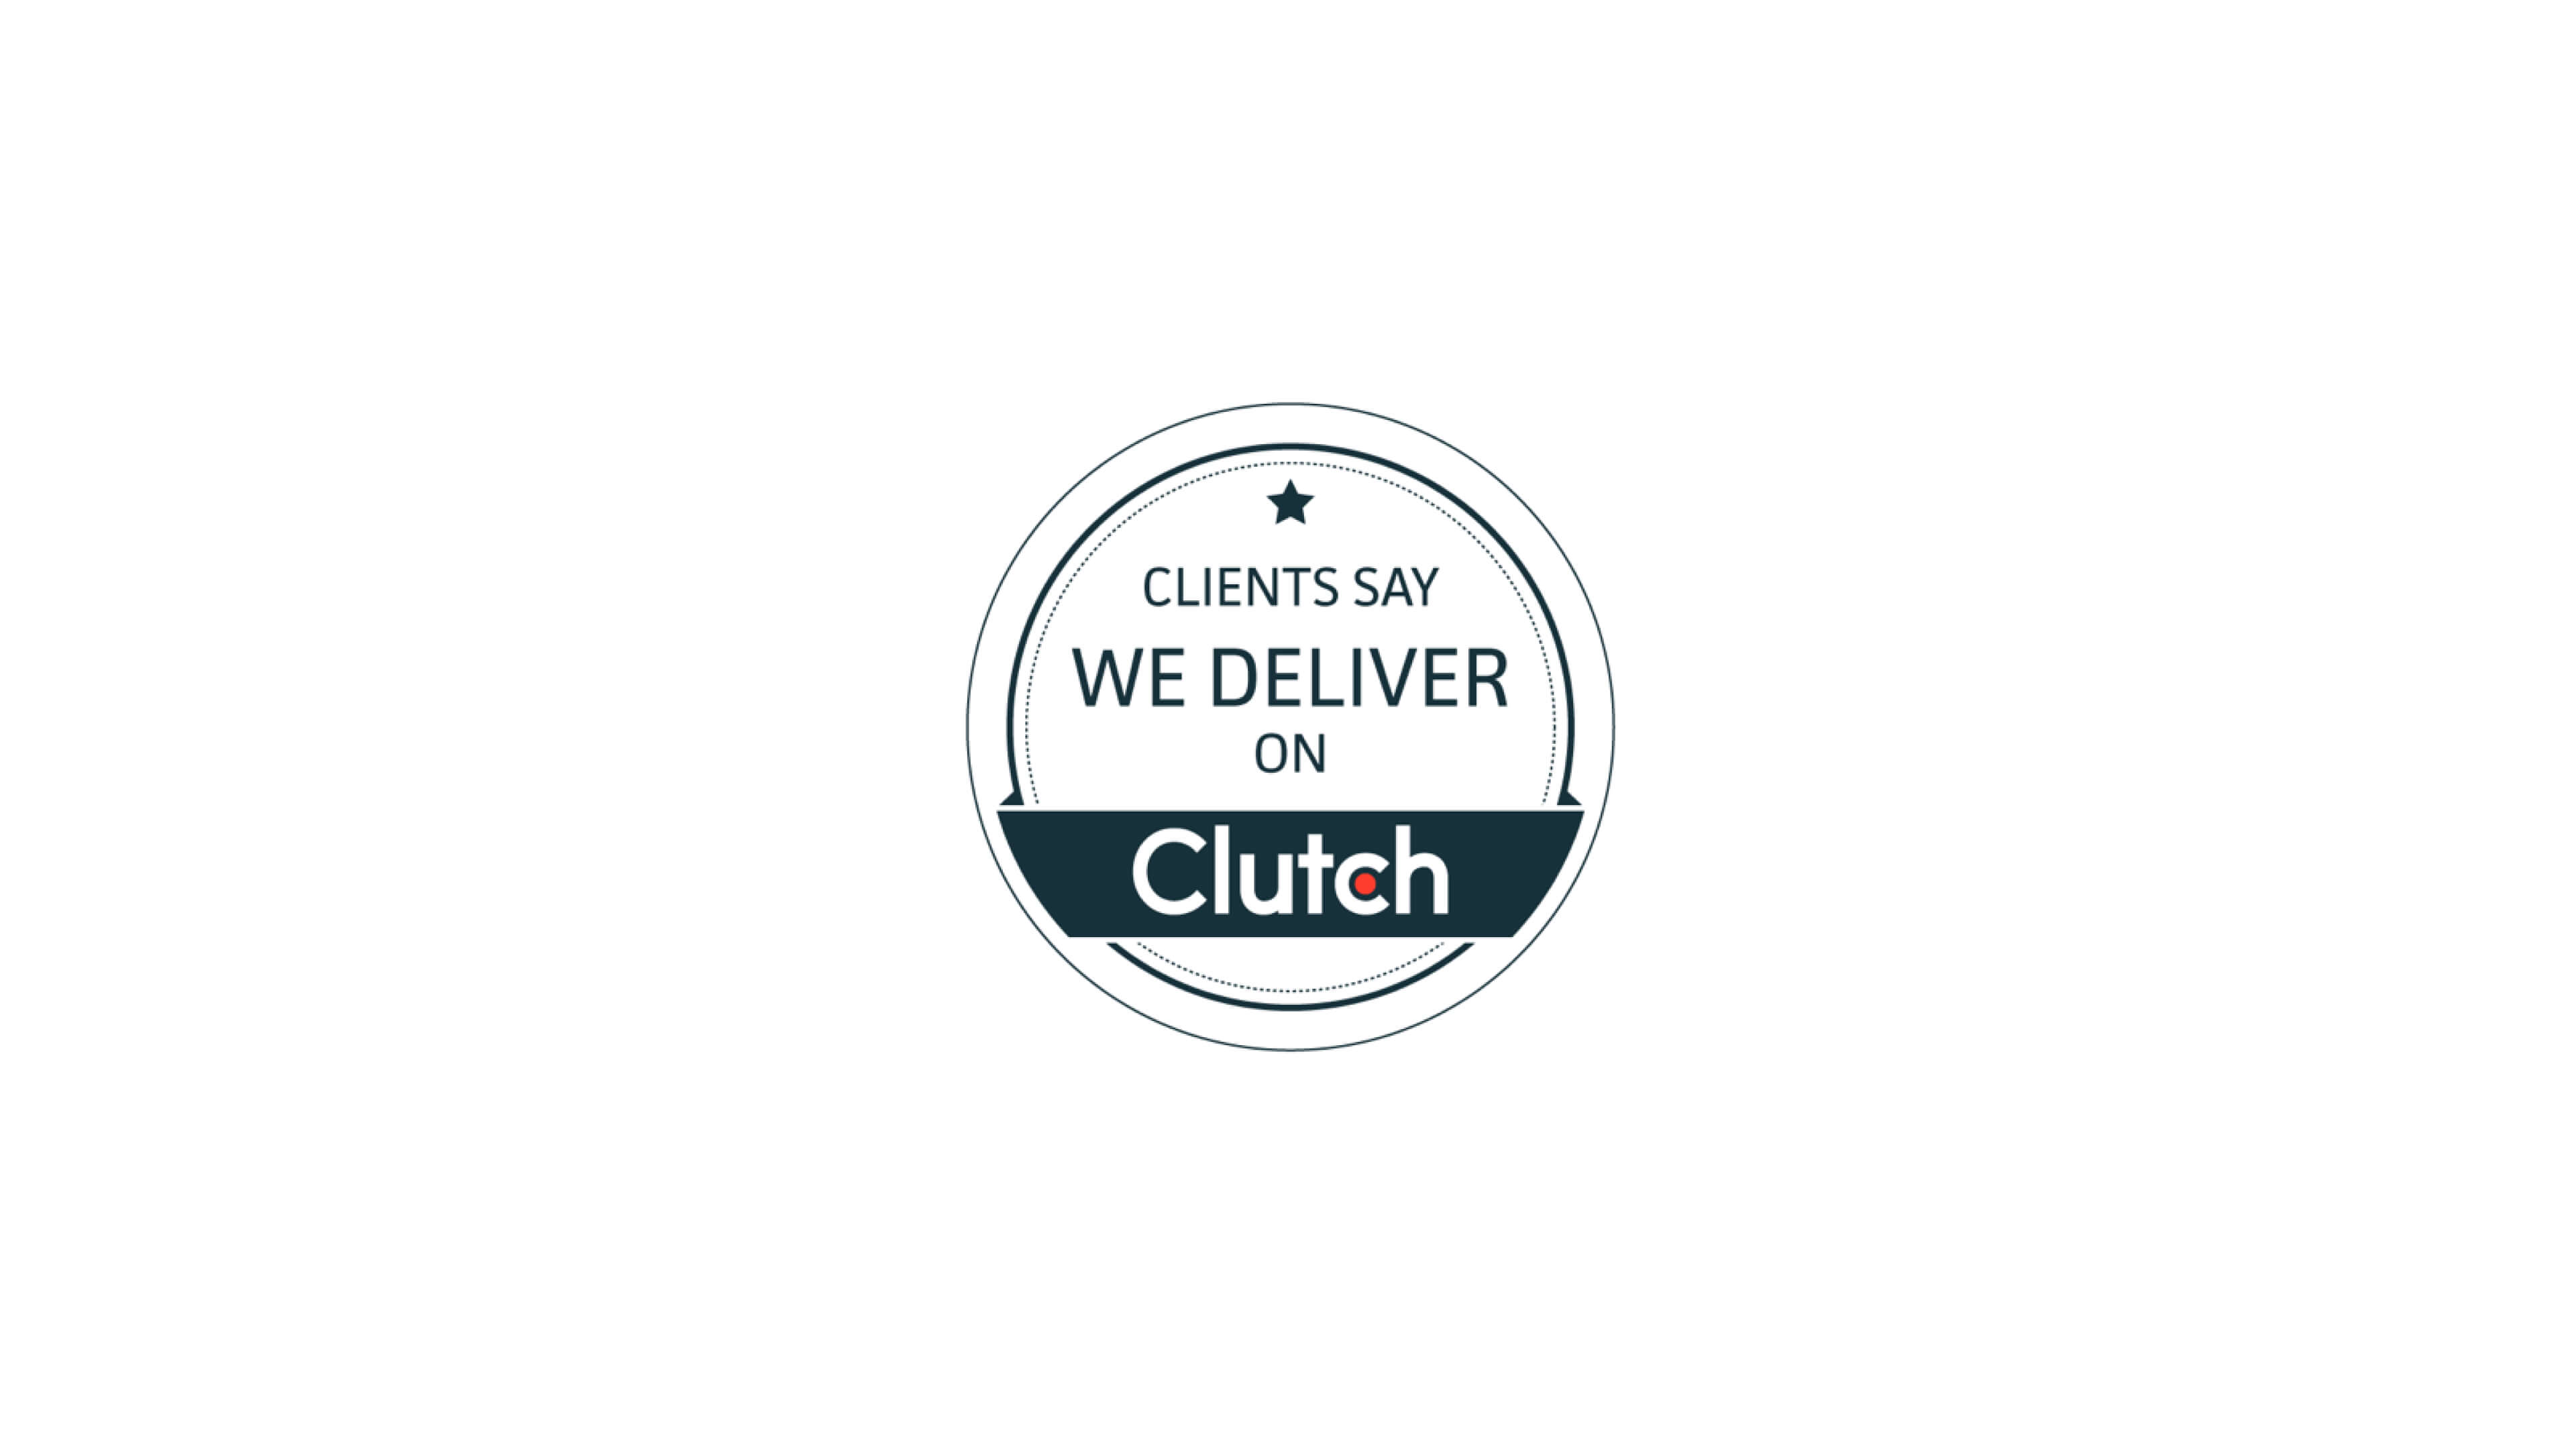 EL Passion is a trusted company, which is proved by their reviews on Clutch.co